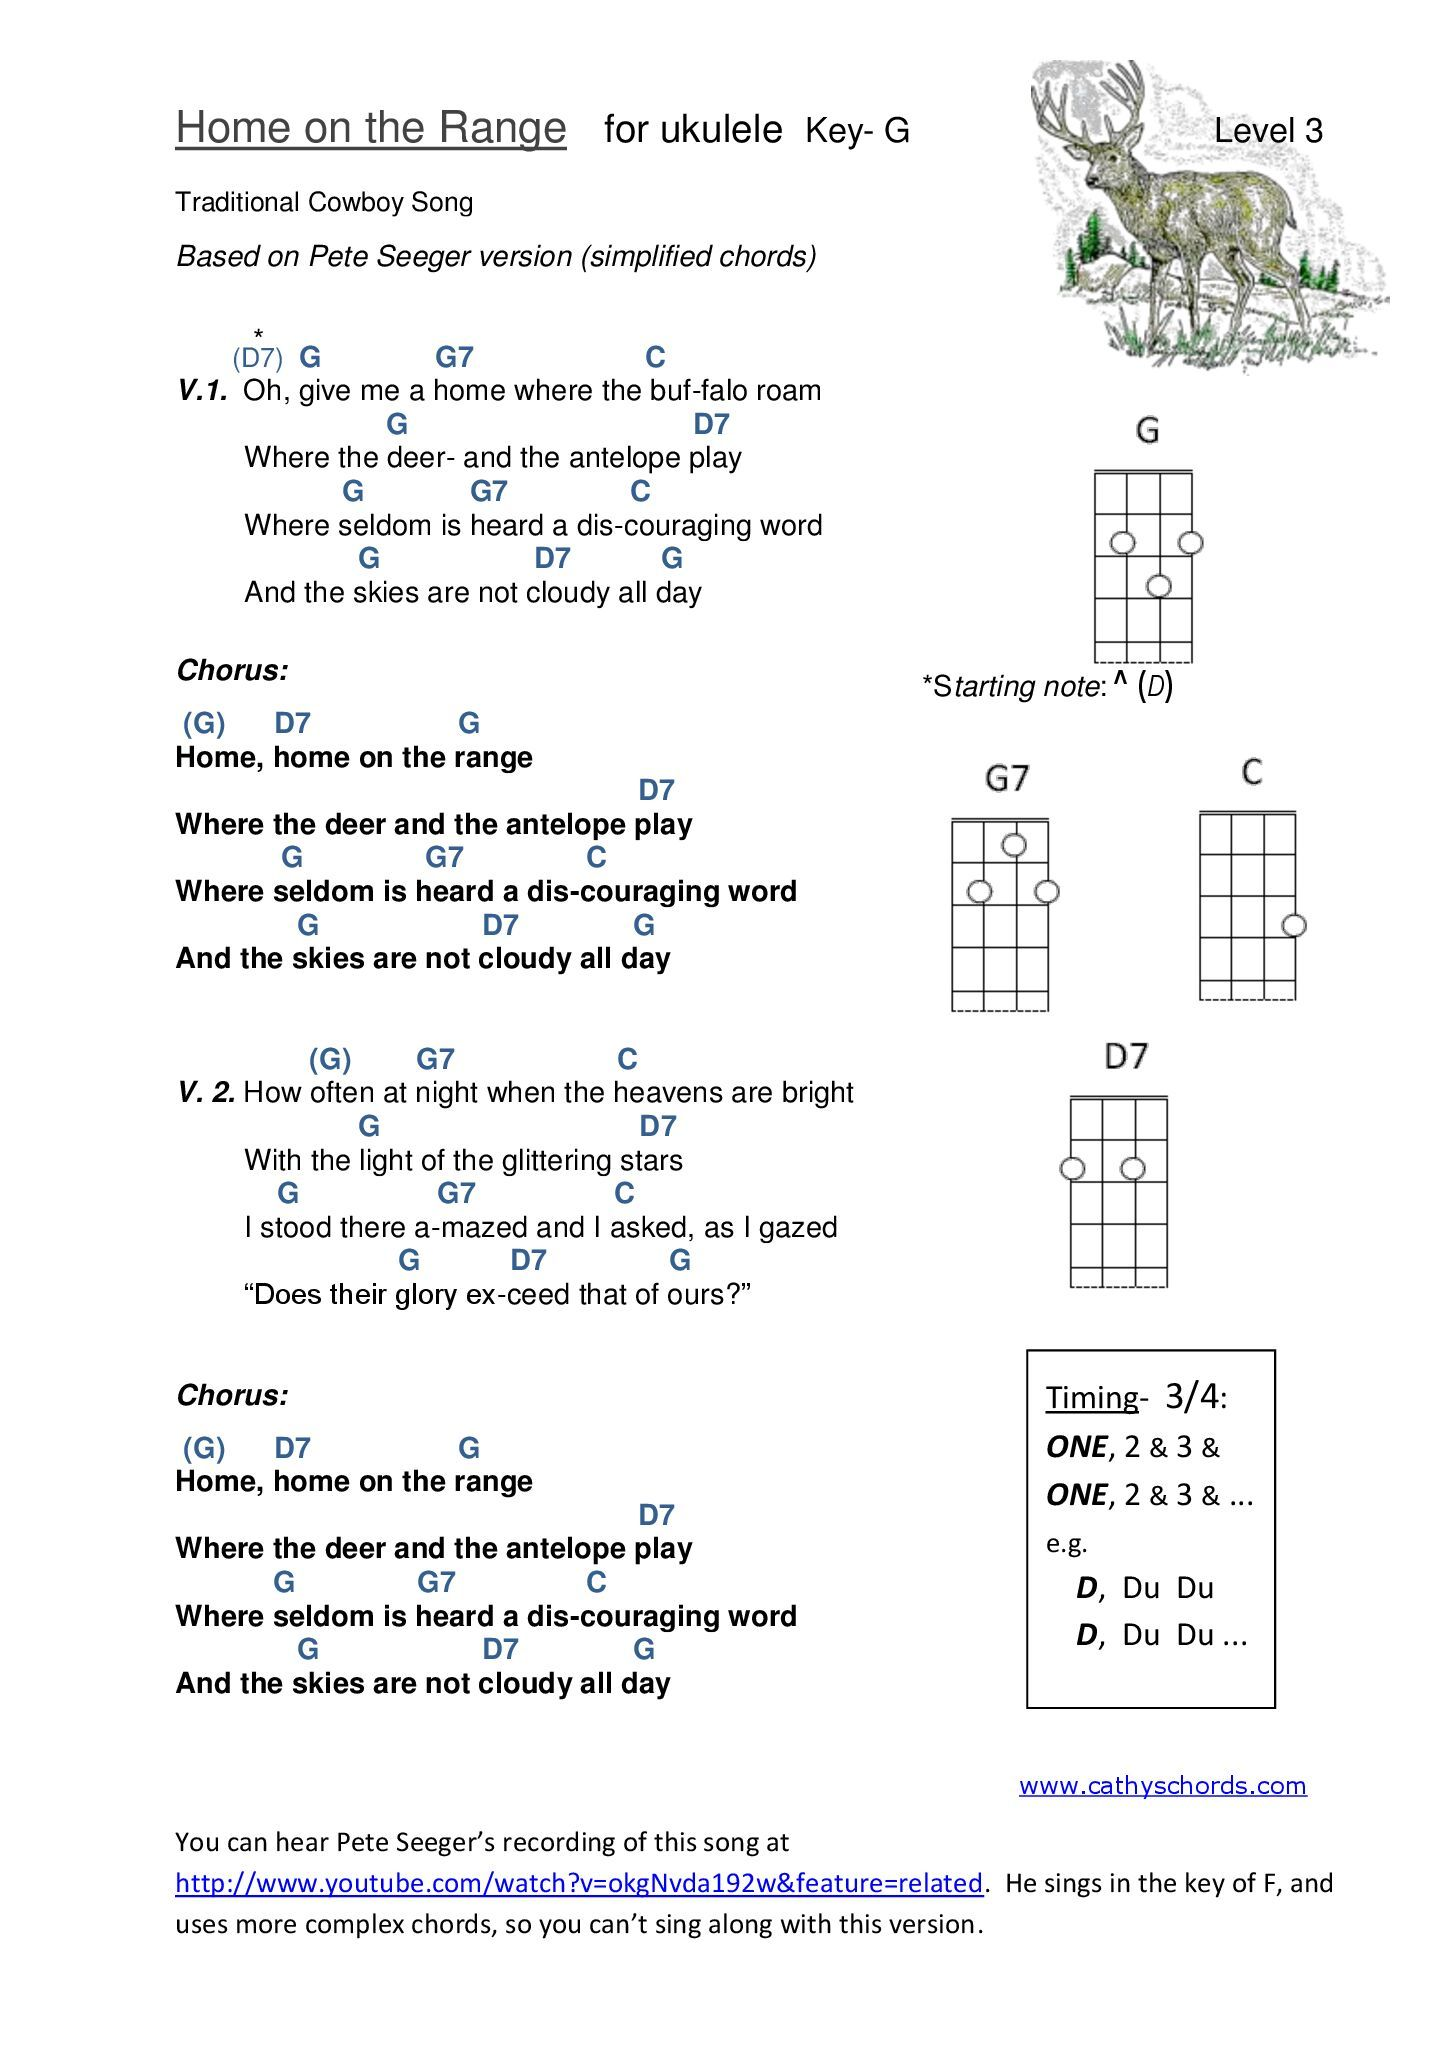 Pin By Courtney Alexander Richards On Uke Ukulele Chords Songs Ukulele Music Ukulele Songs I know it would be difficult when you don't have any guitar classes around these guitar songs are easily playable for a beginner and intermediate with very little effort. ukulele chords songs ukulele